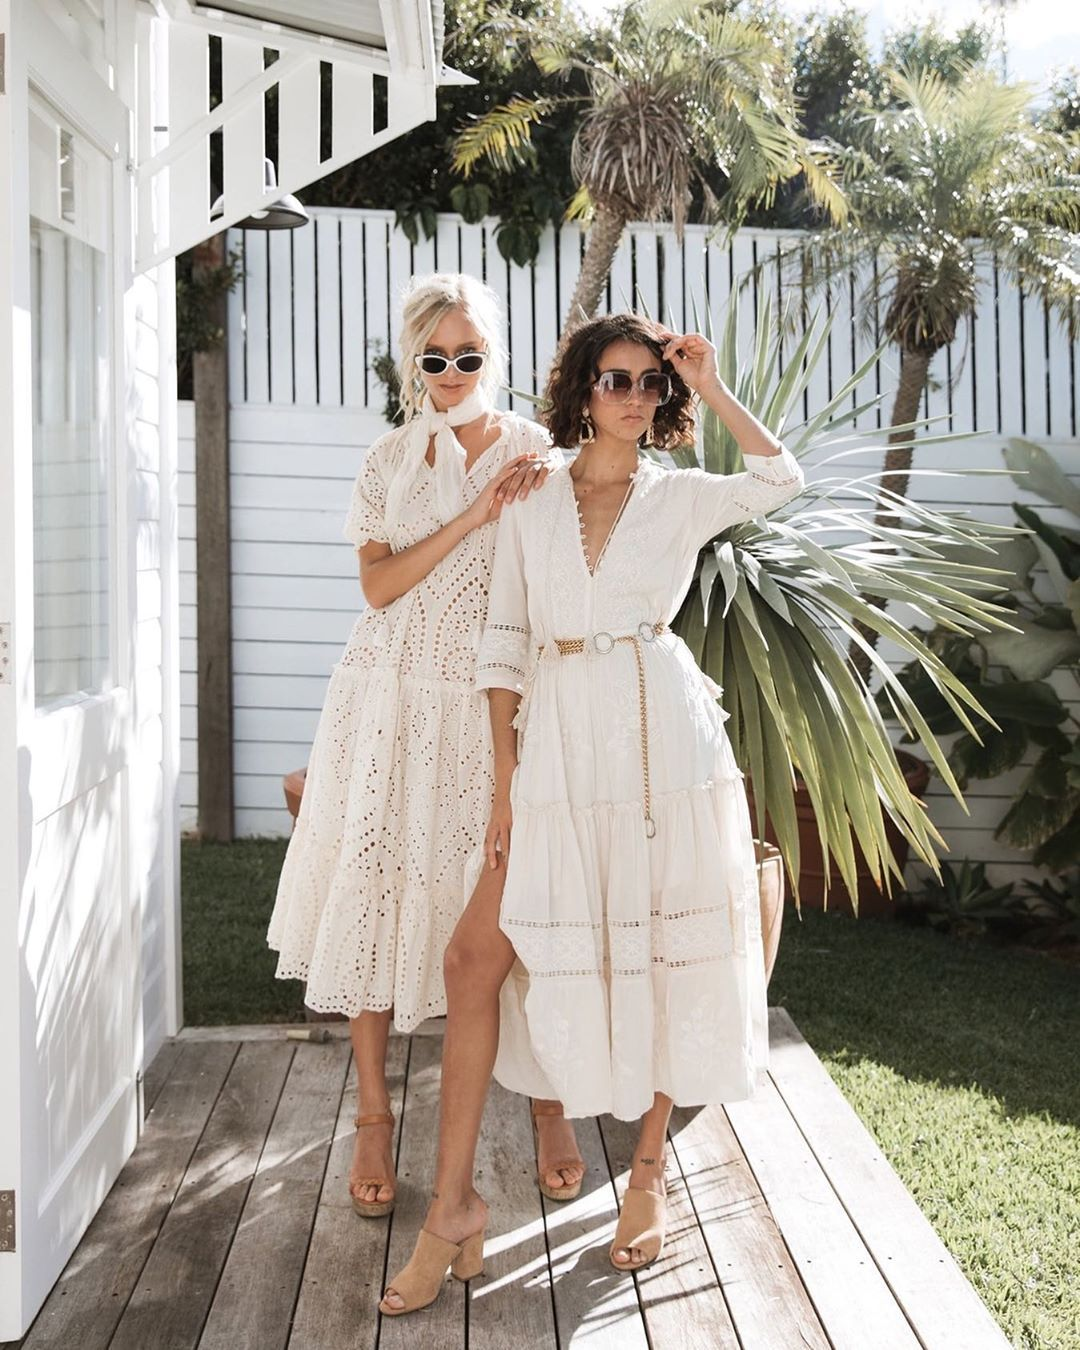 S P E L L On Instagram Match Made In Neongypsy Heaven Kateontheplate In Our Fairytale Angl Garden Party Dress Garden Party Outfit Bohemian Style Dresses [ 1350 x 1080 Pixel ]